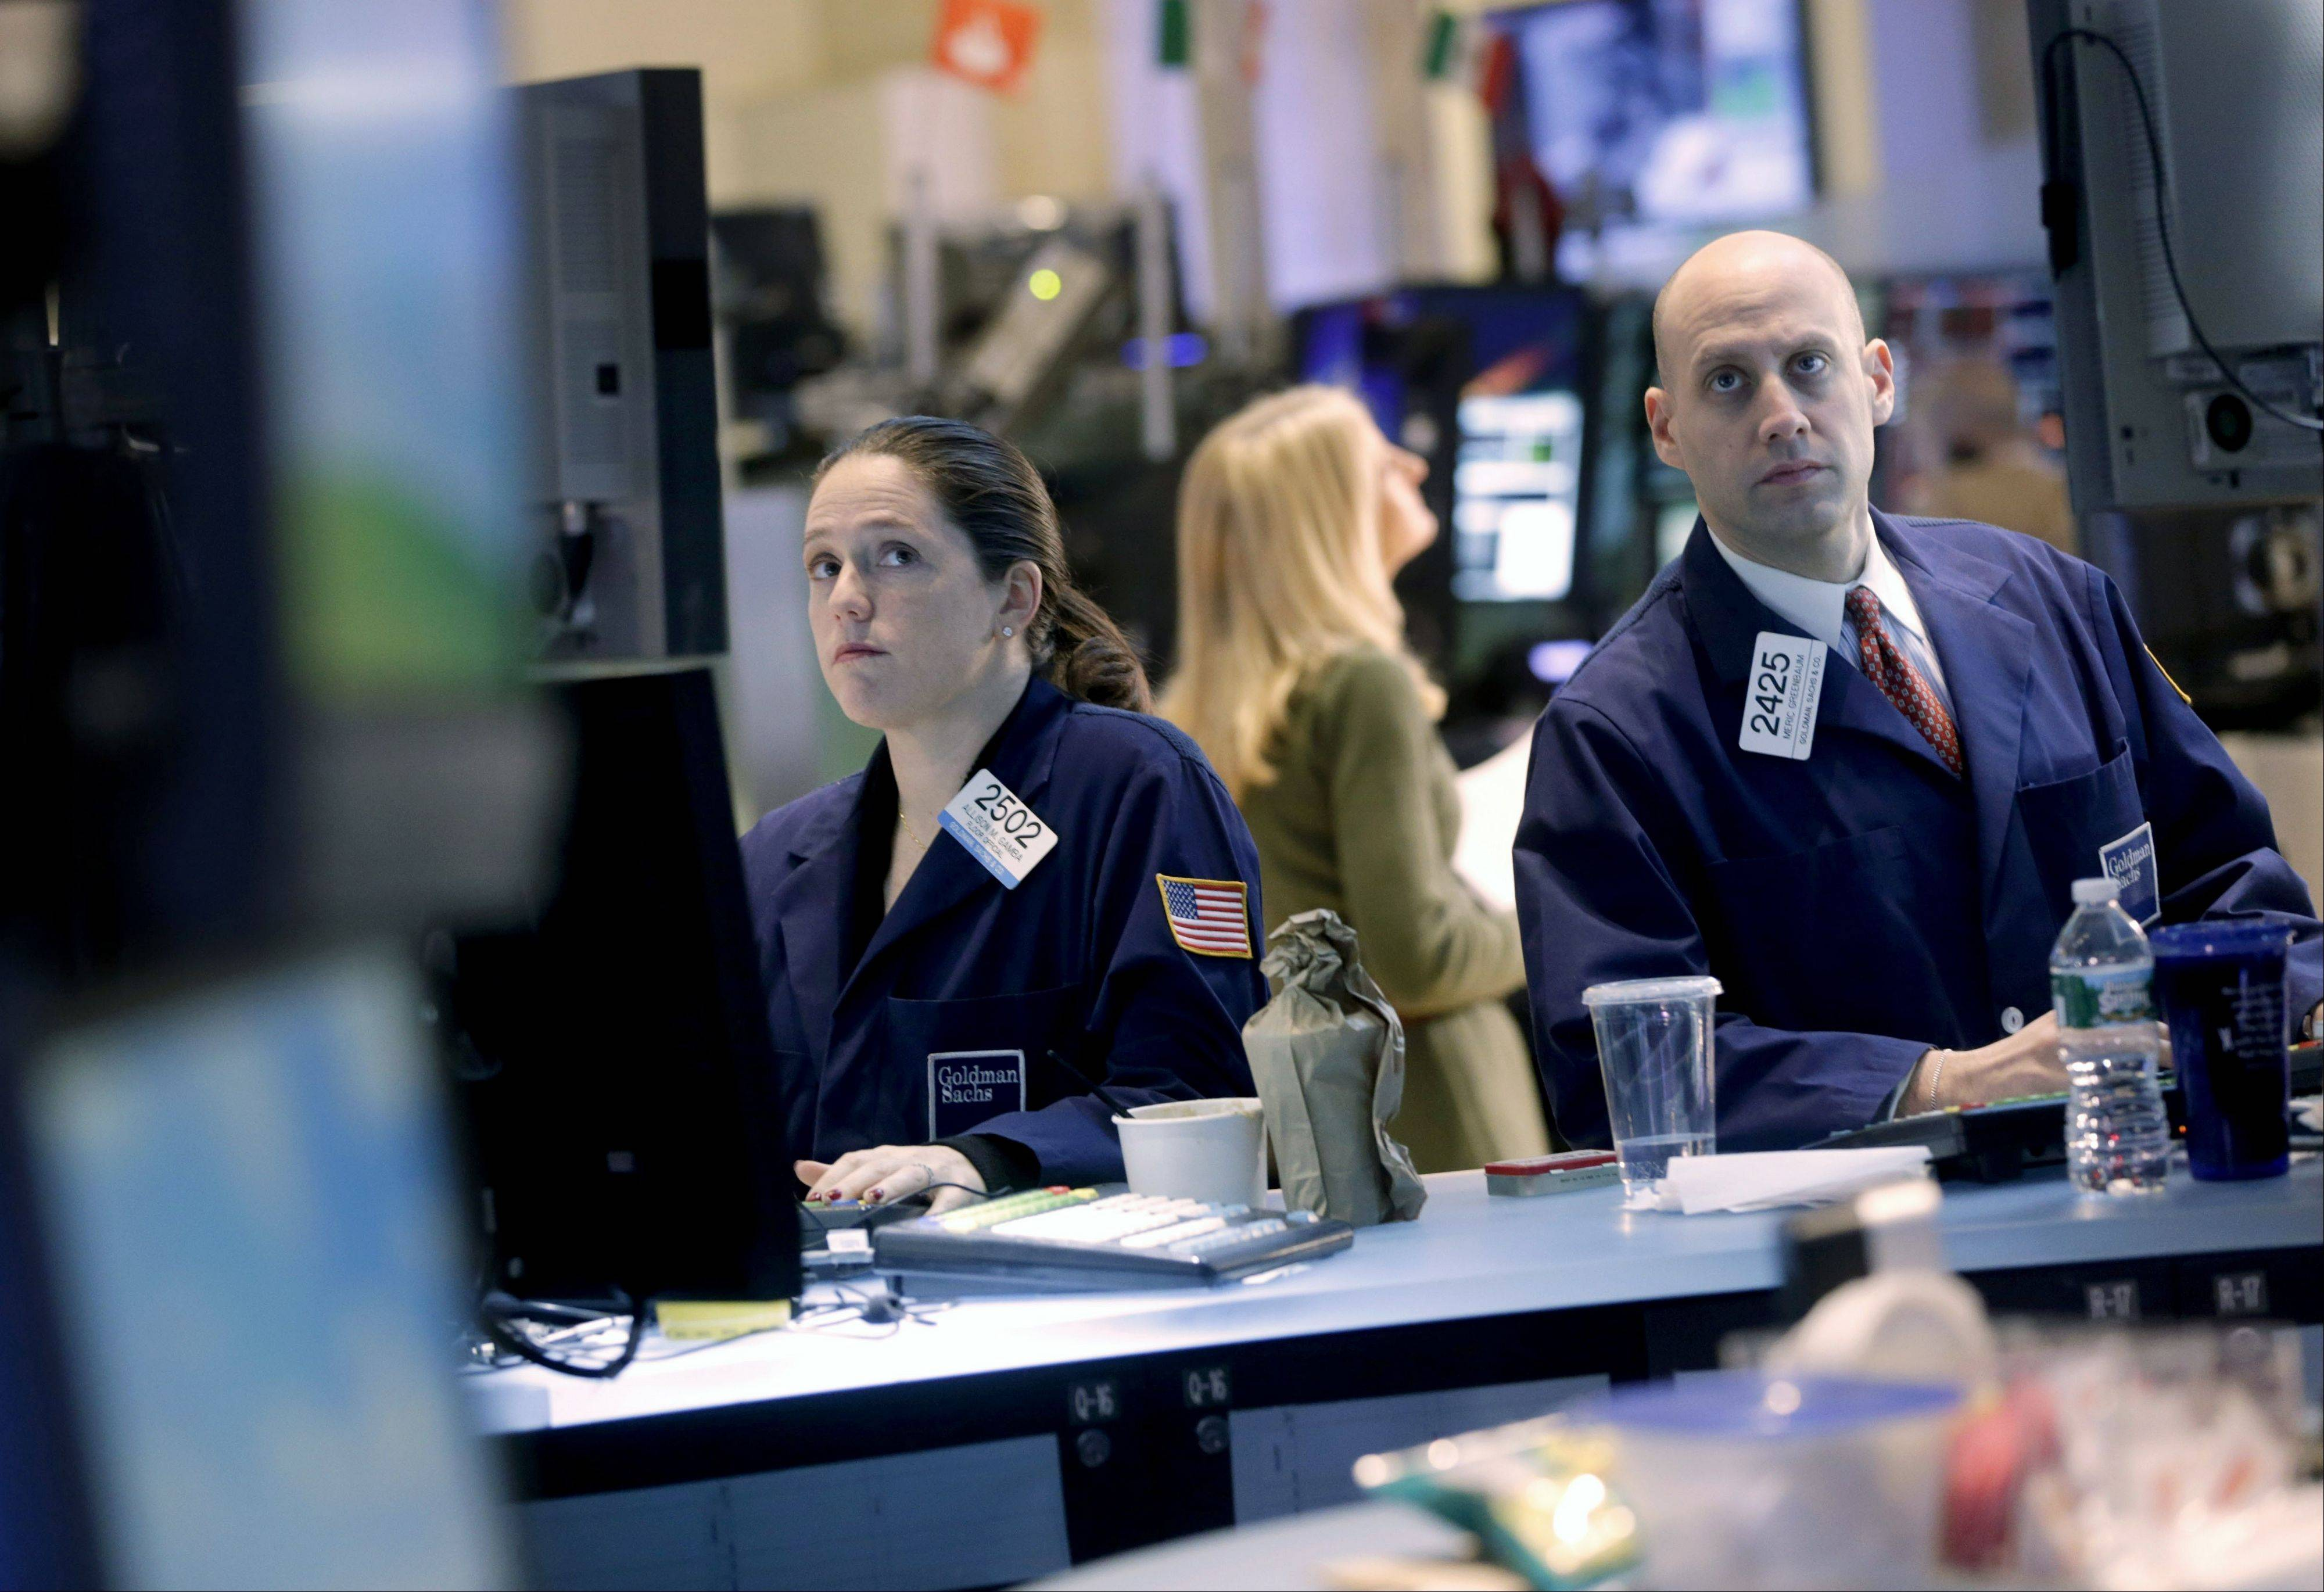 Stocks fell Monday, after the Standard & Poor's 500 Index climbed to a five-year high, as investors awaited the start of the earnings season Tuesday.